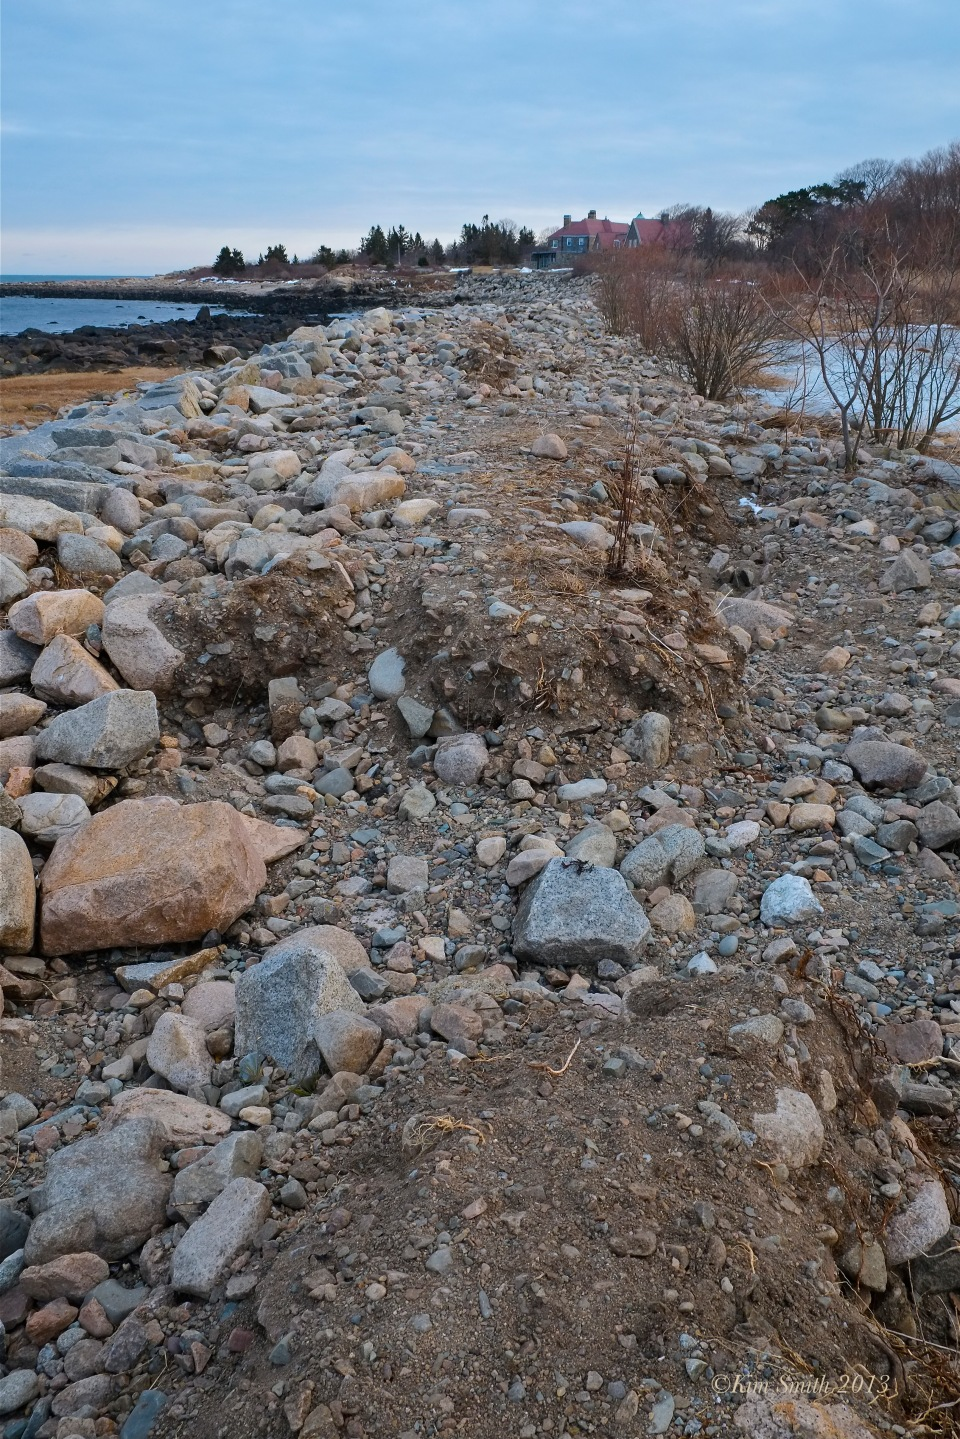 niles-pond-brace-cove-storm-damage-1-c2a9kim-smith-2013-copy